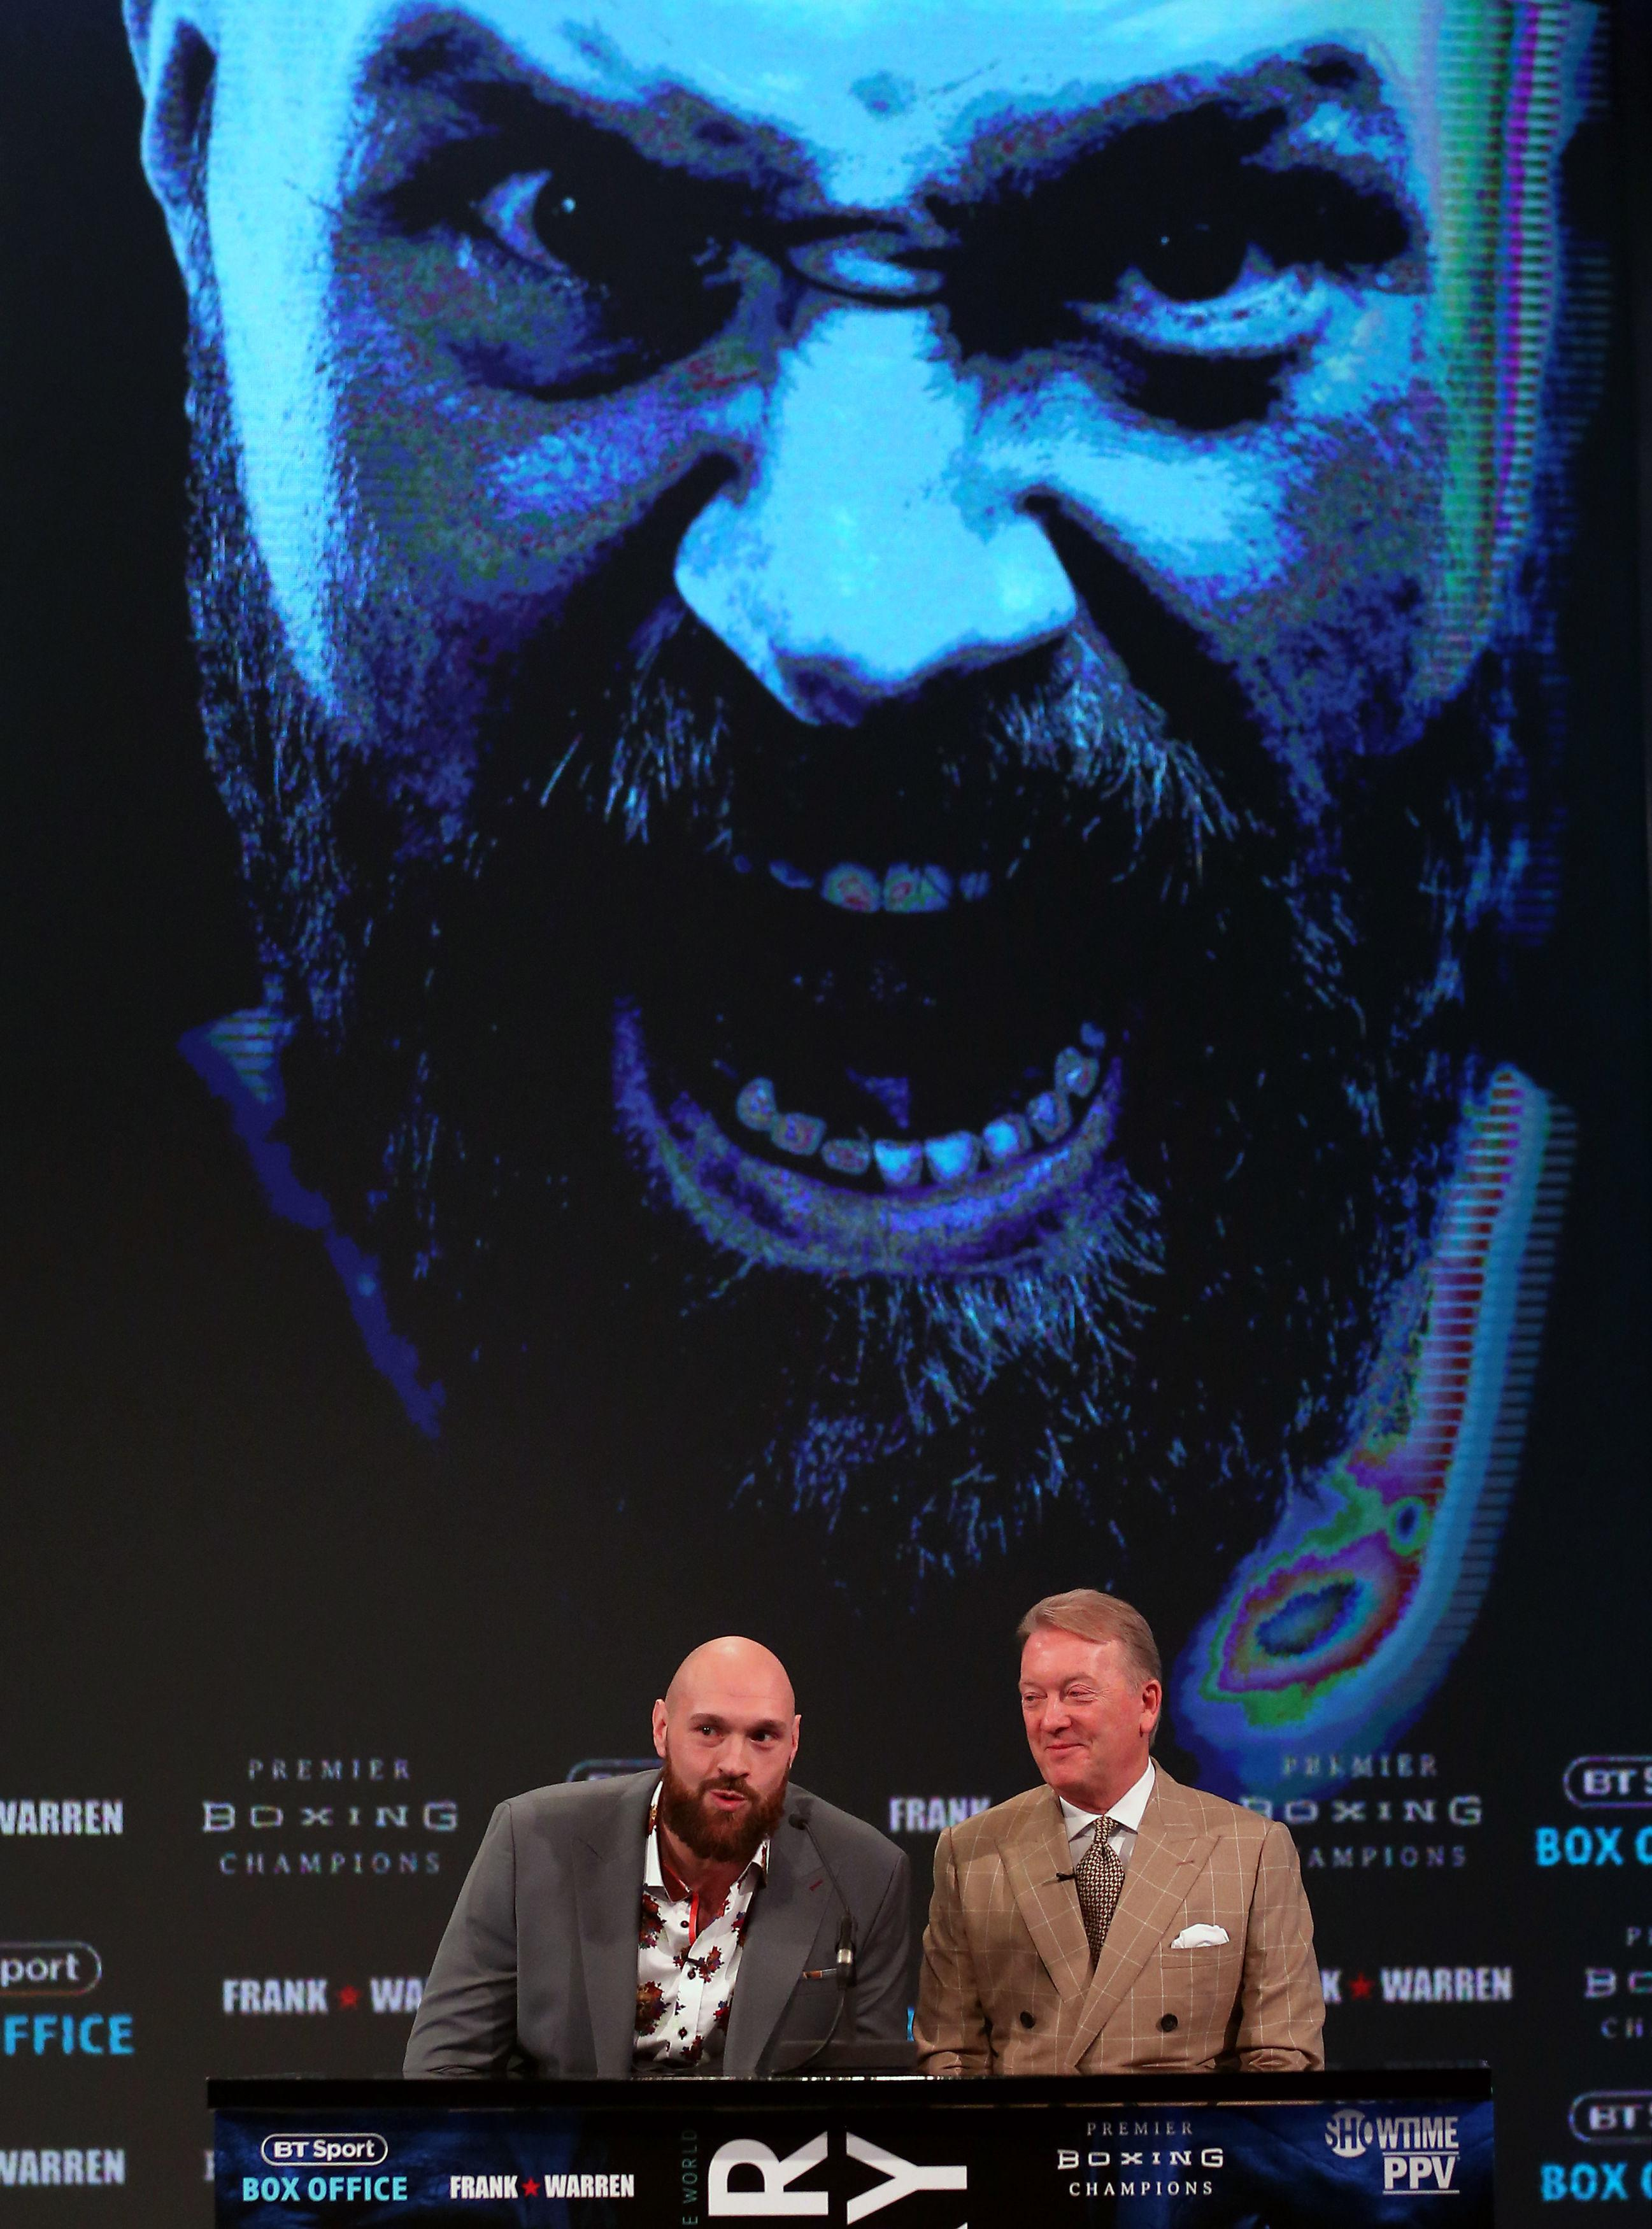 Warren and Fury have been taking press conferences ahead of the December 1 bout